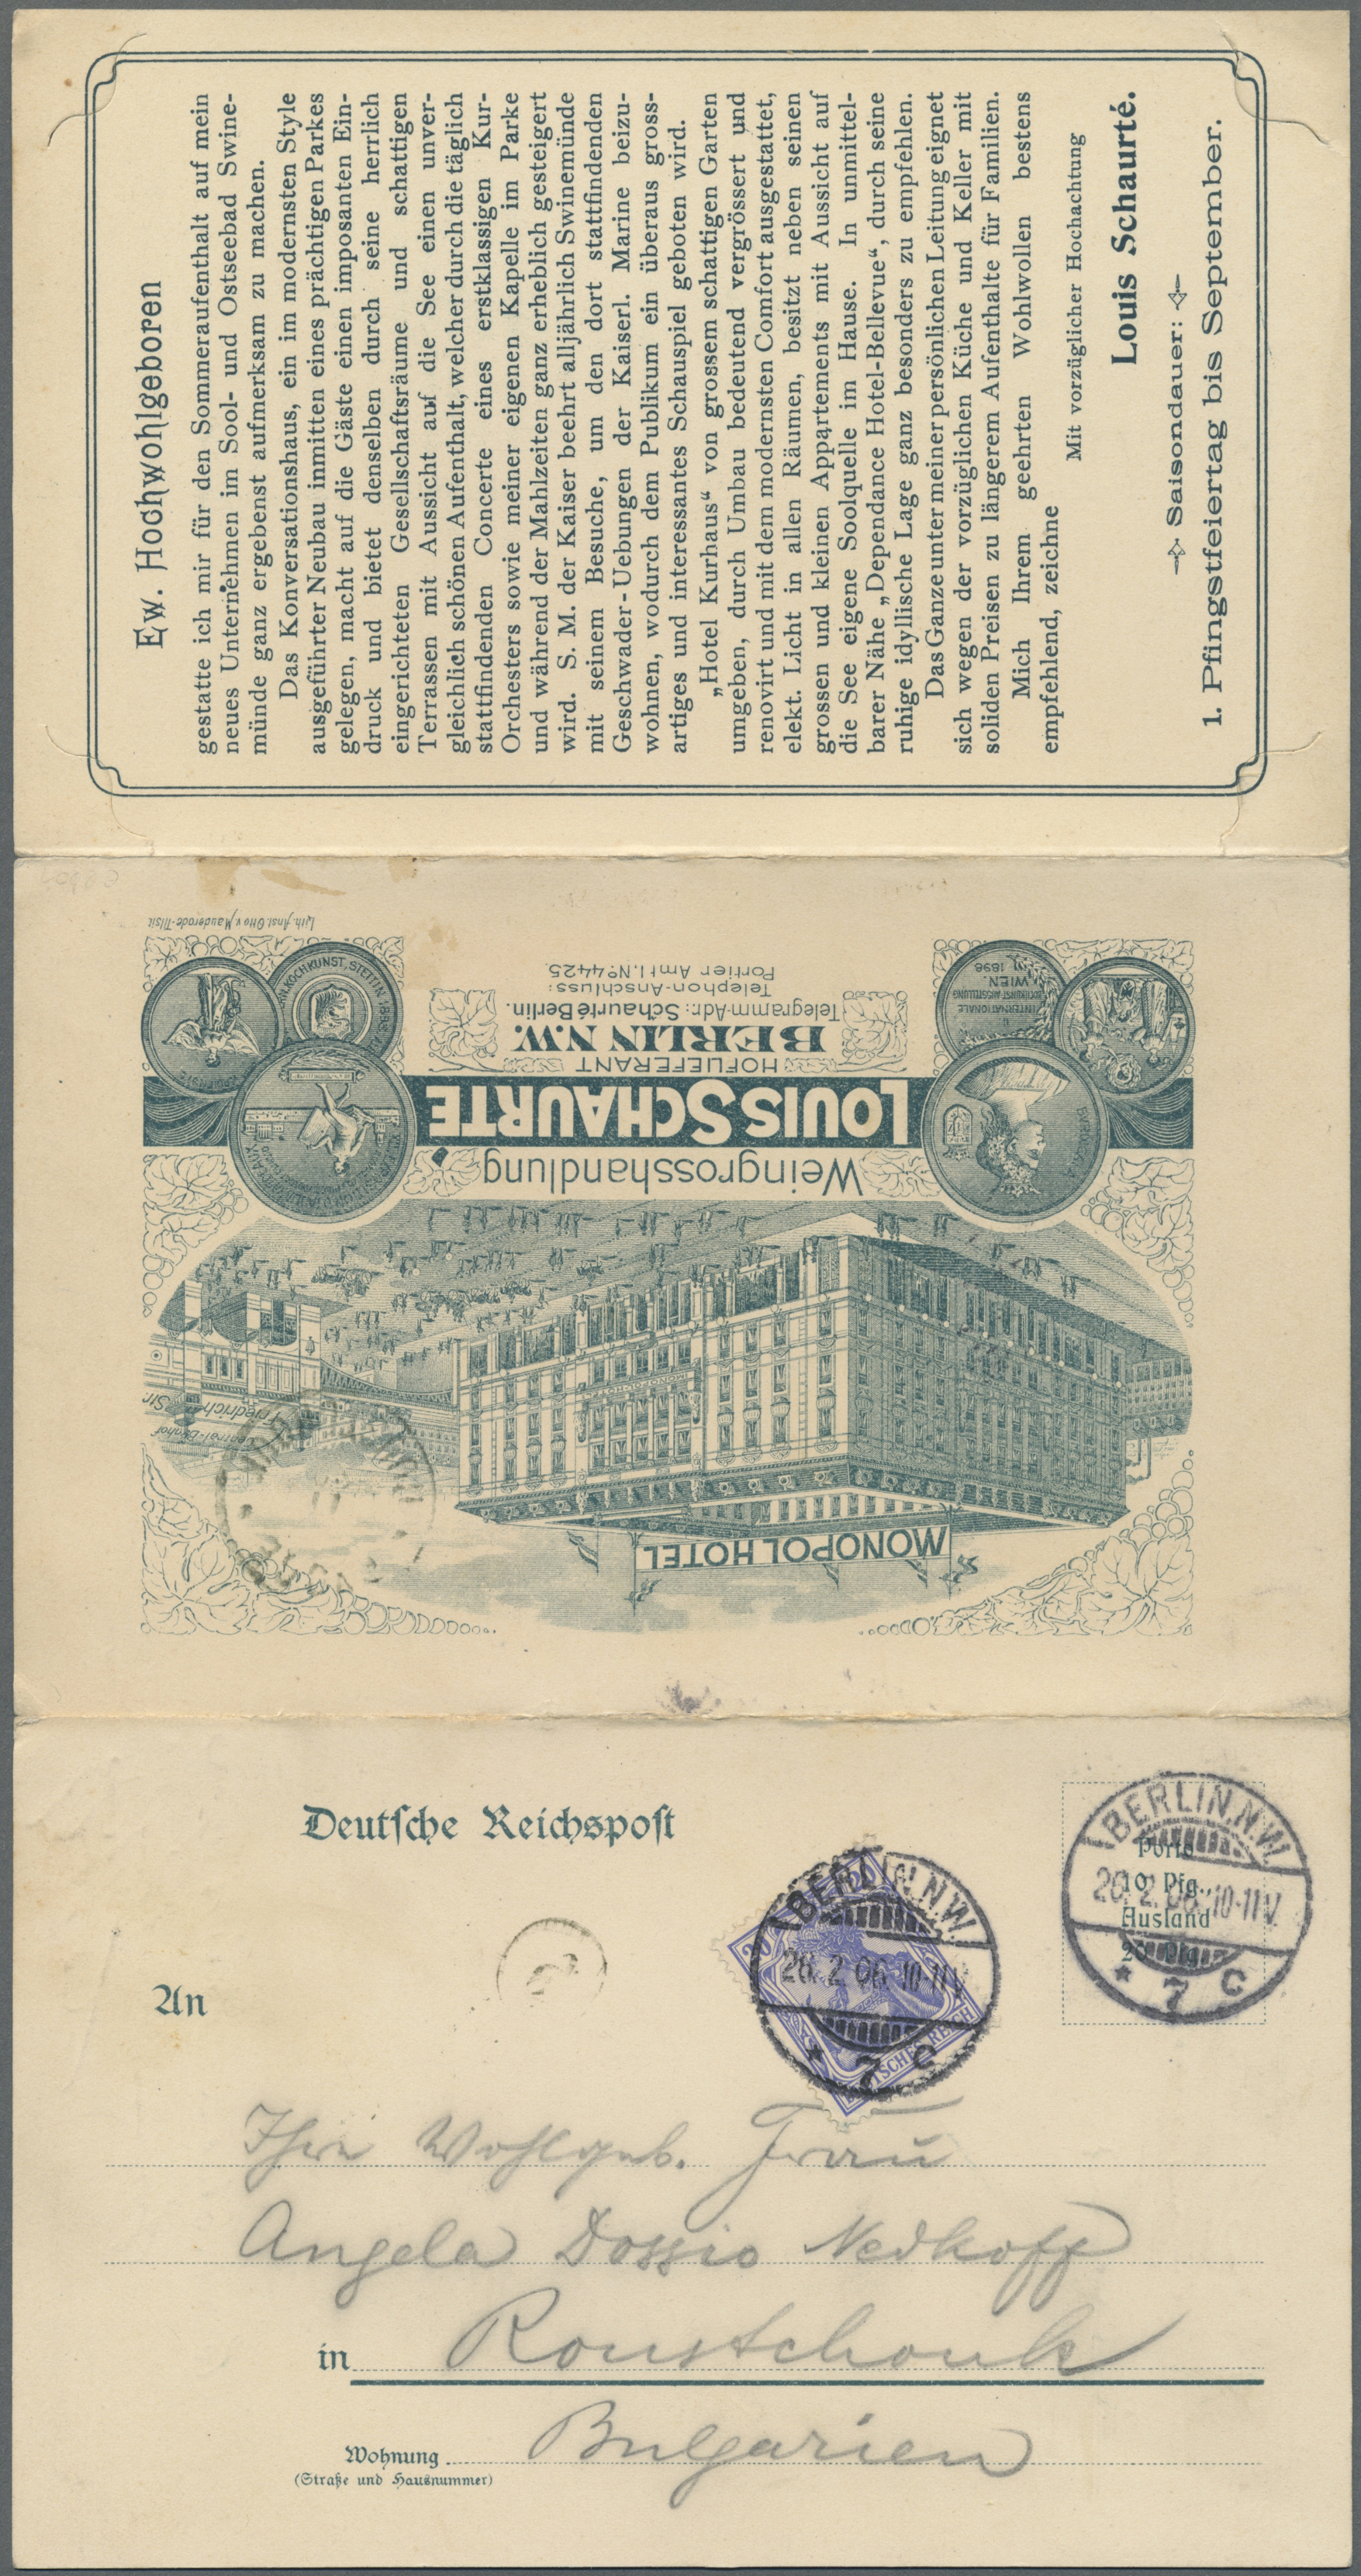 Lot 11001 - thematik: alkohol-wein / alcohol-wine  -  Auktionshaus Christoph Gärtner GmbH & Co. KG Single lots Philately Overseas & Europe. Auction #39 Day 4